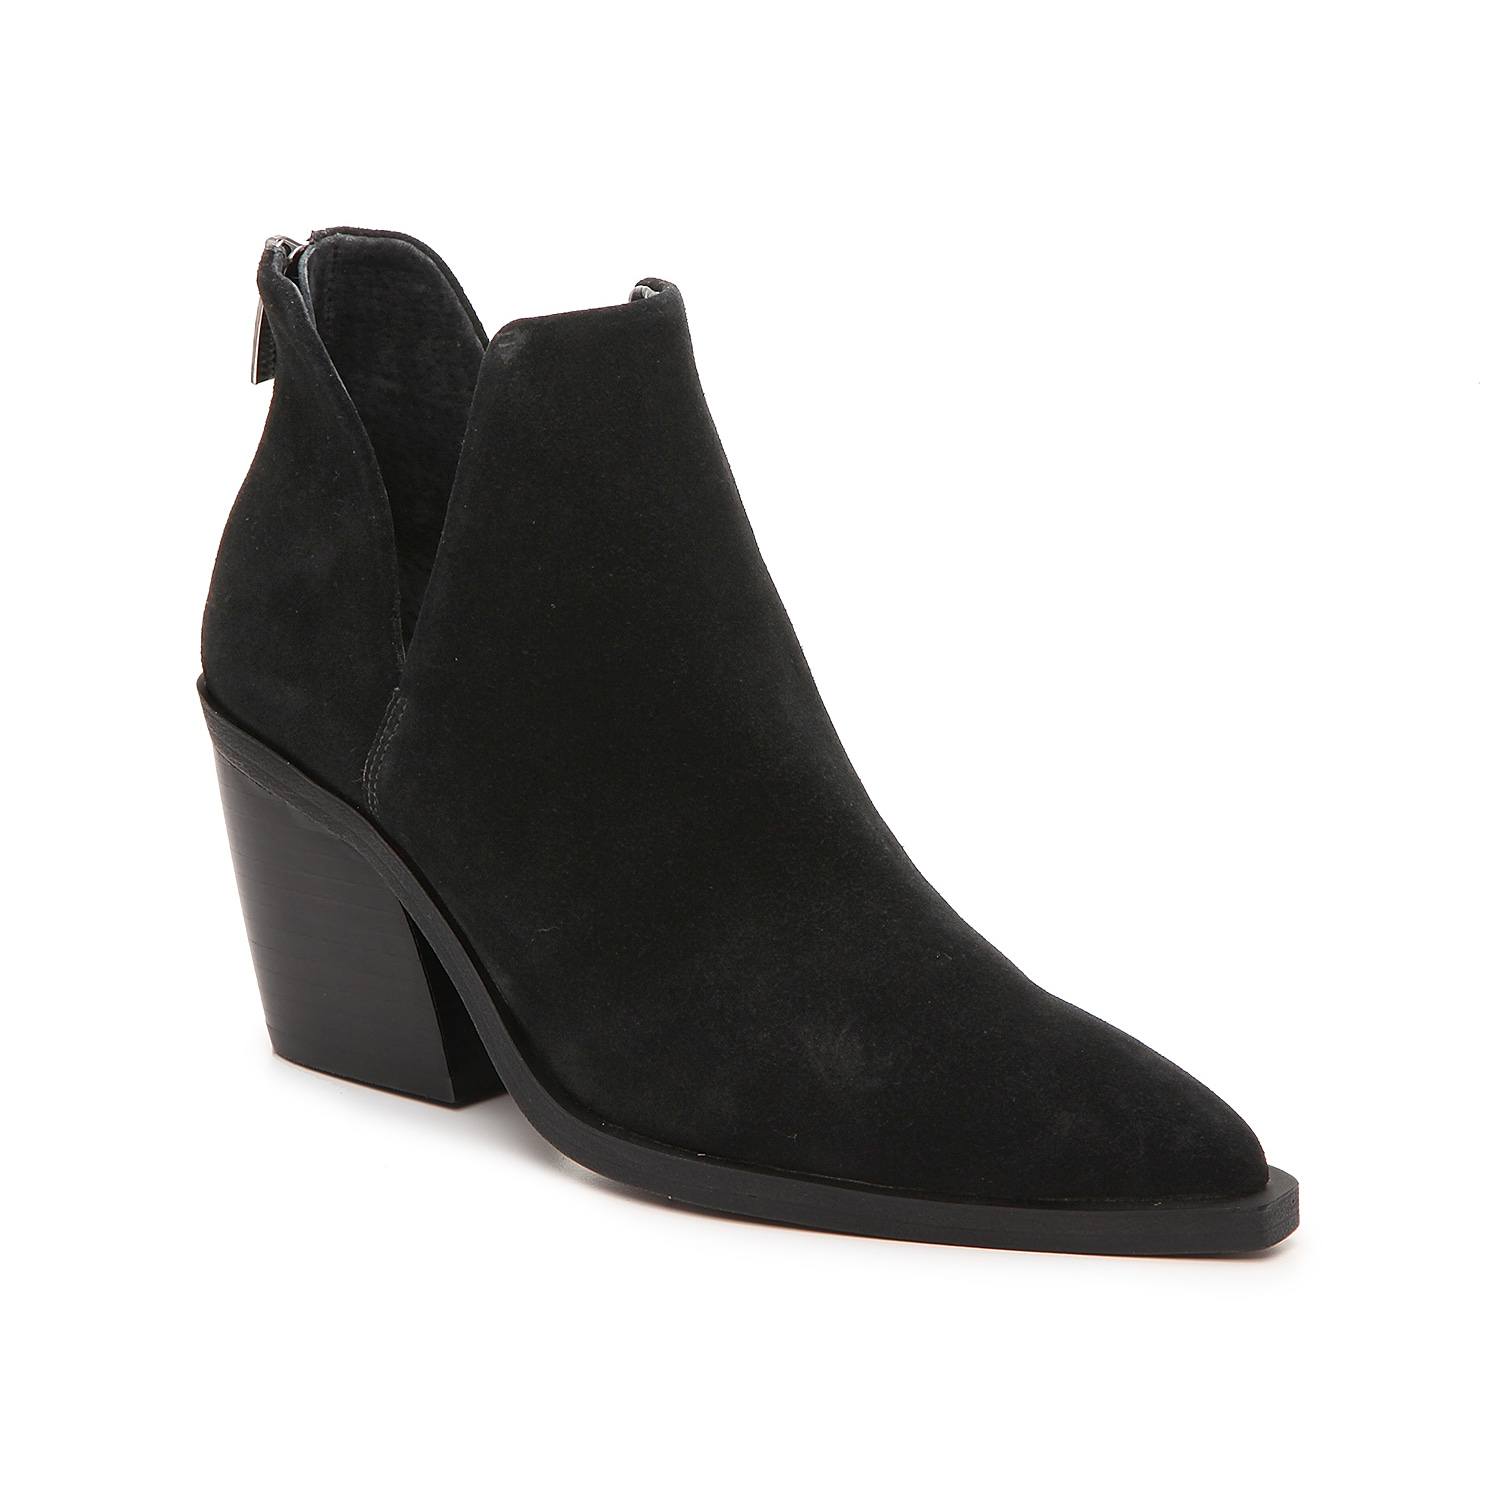 Dramatic angles define the Bibestie ankle boots from Vince Camuto. An extra-long toe ends in a square point, deep V-shape cutouts accent the sides, and a curved block heel supports the silhouette.Click here for Boot Measuring Guide.